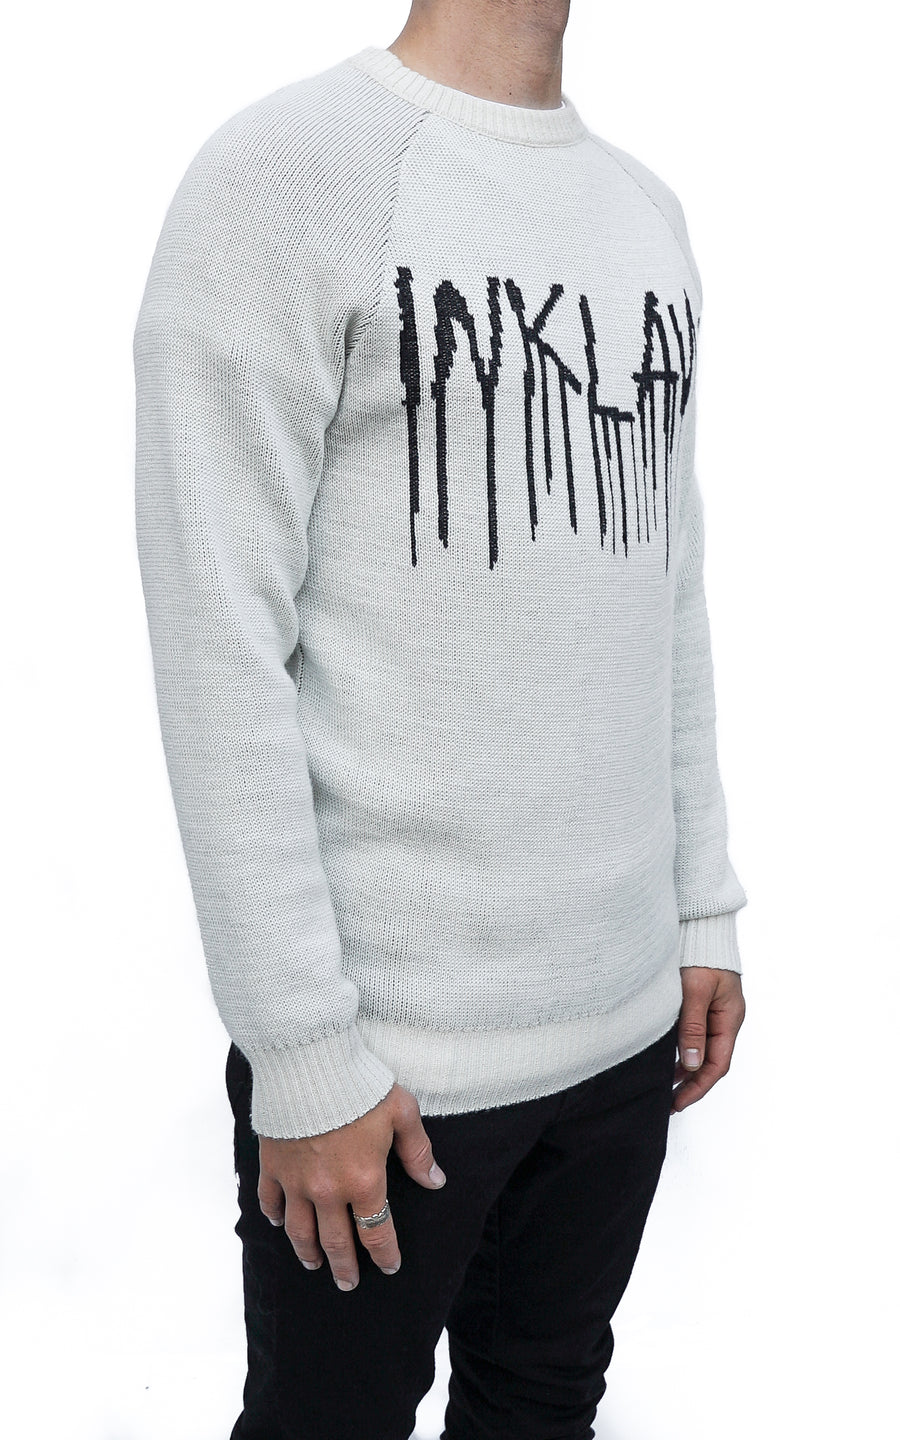 ONYX TEAR KNIT SWEATER - WHITE